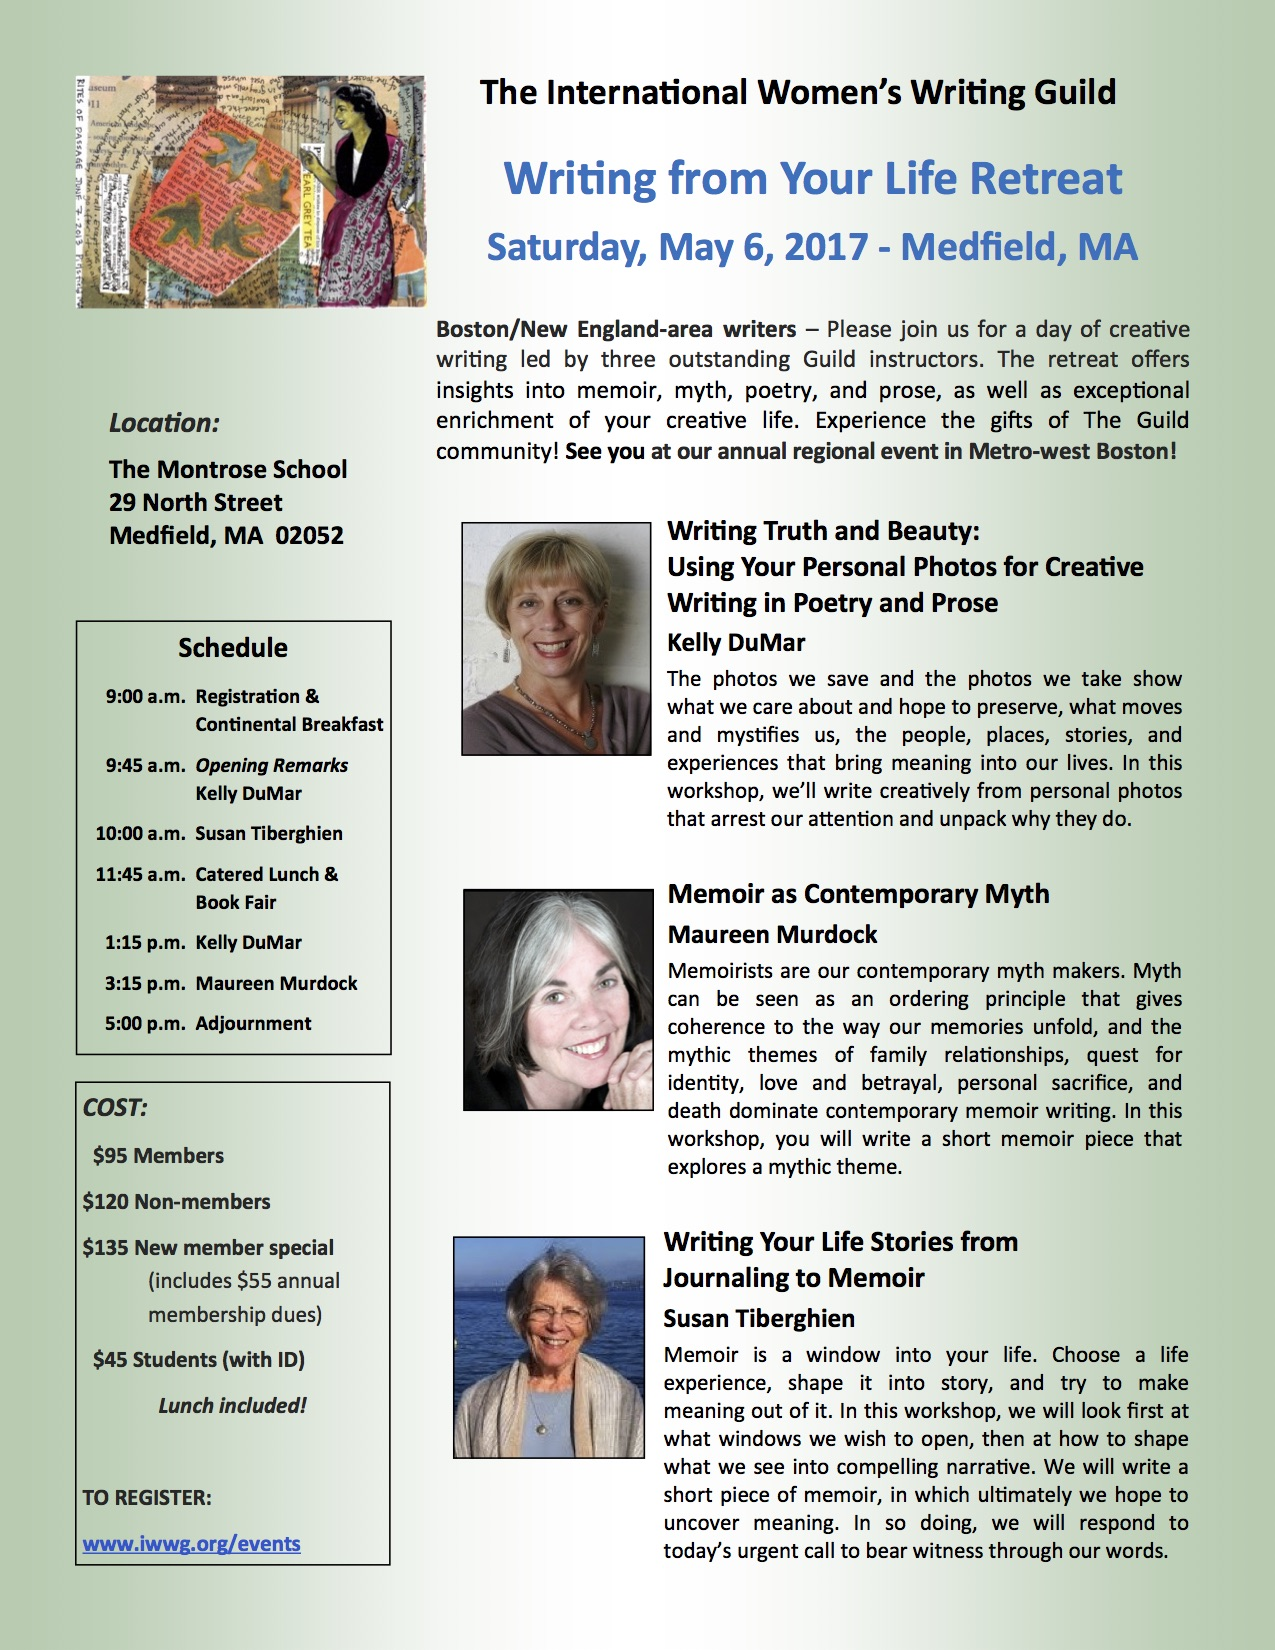 http://www.iwwg.org/events